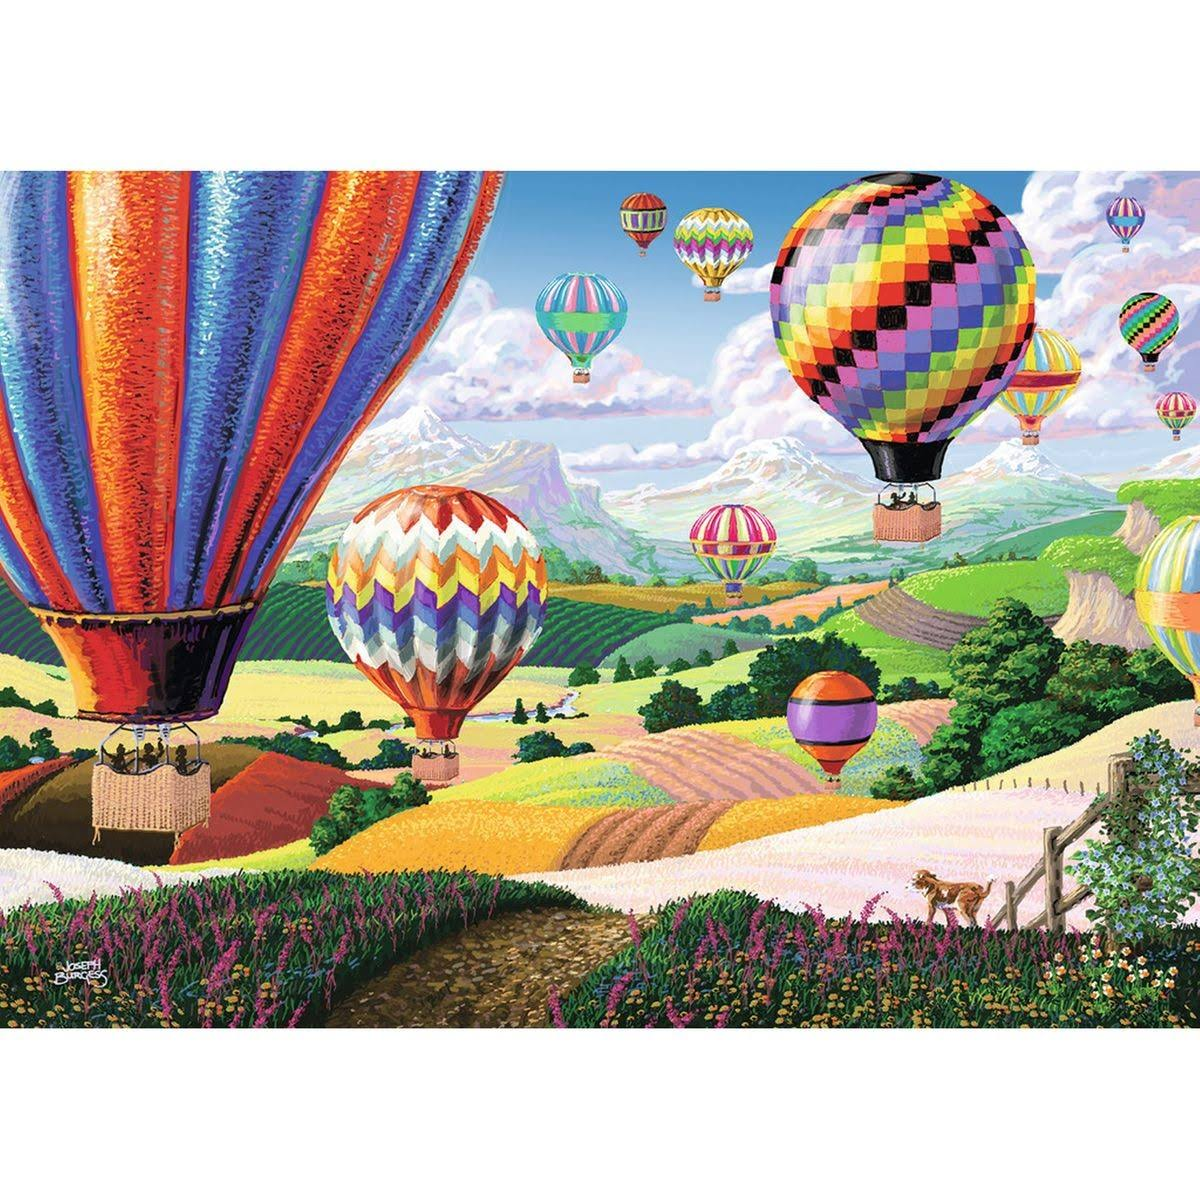 Ravensburger Brilliant Balloons Jigsaw Puzzle - 500 Pieces